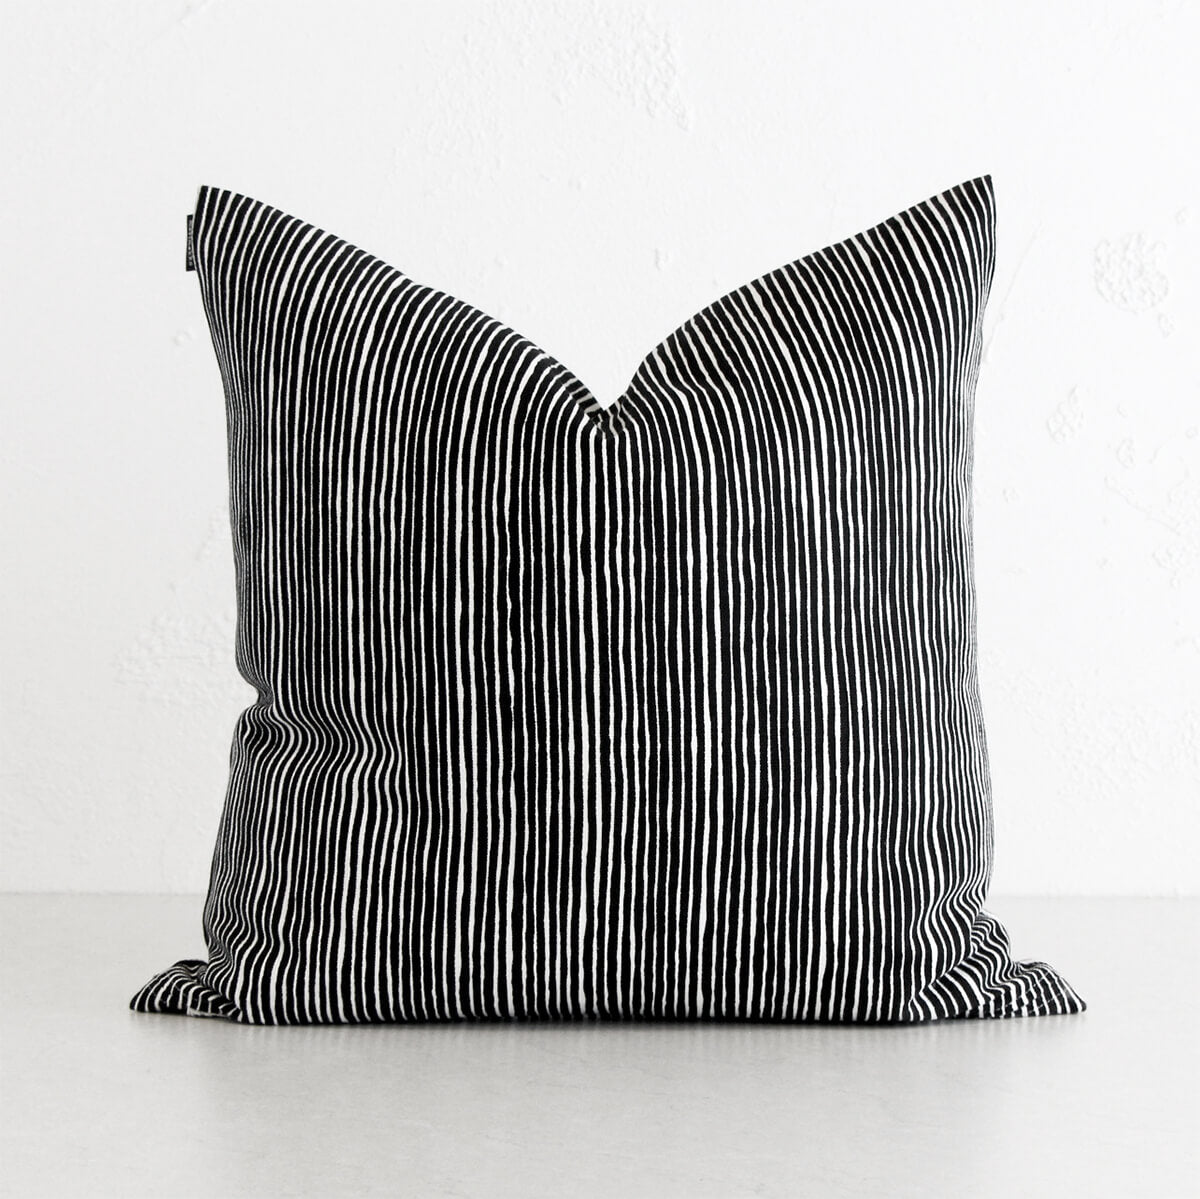 MARIMEKKO | VARVUNRAITA CUSHION | BLACK + WHITE